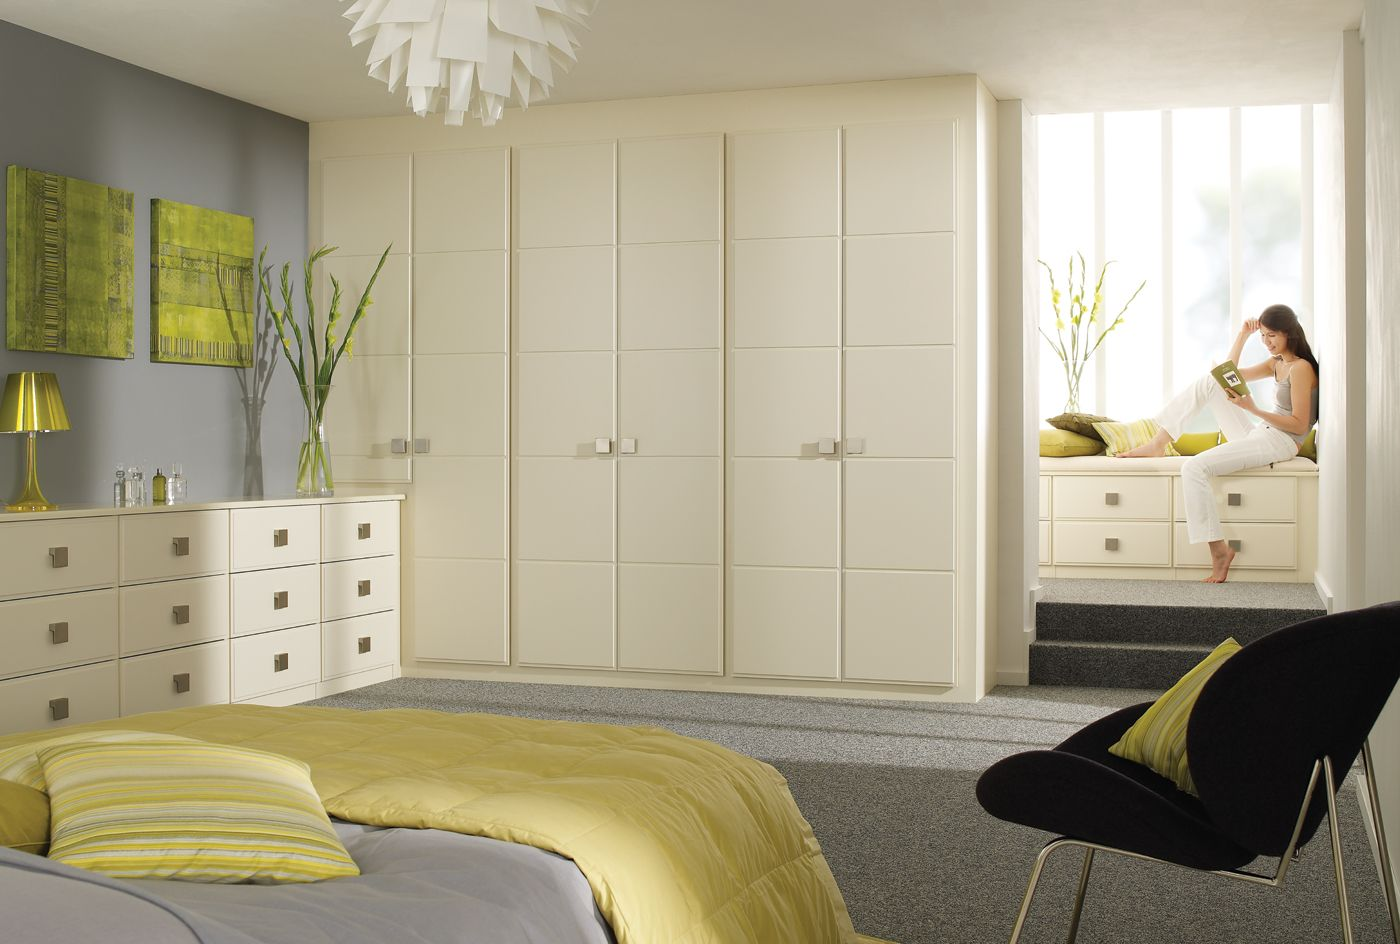 Linea Bedroom Furniture The Linea Bedroom Has A Bold Geometric Design Complemented By The